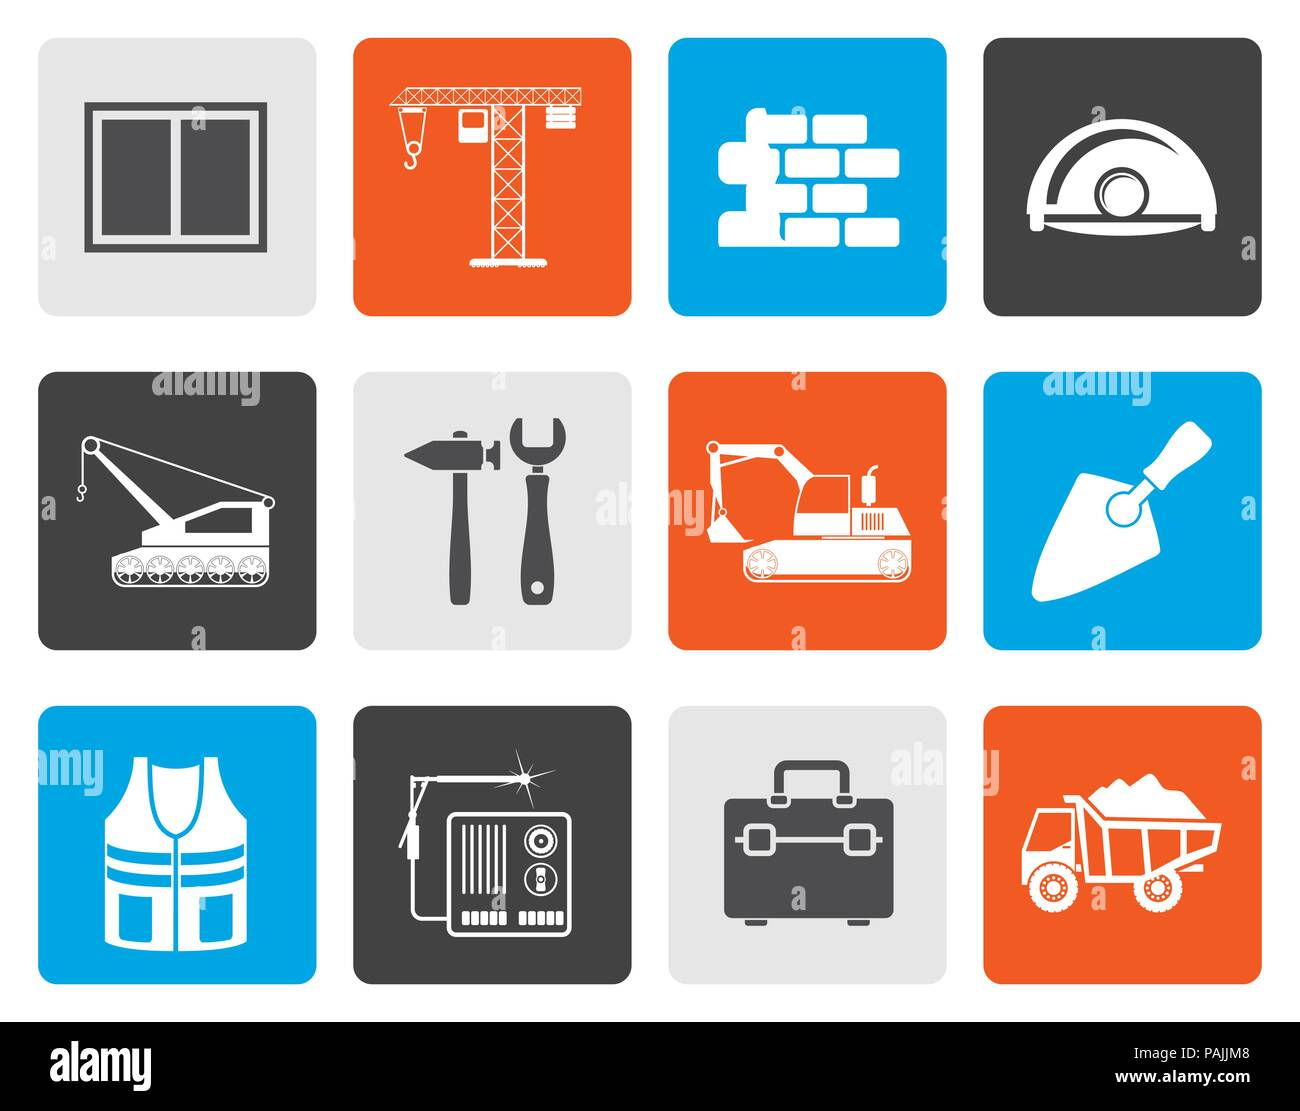 Flat building and construction icons - vector icon set - Stock Vector